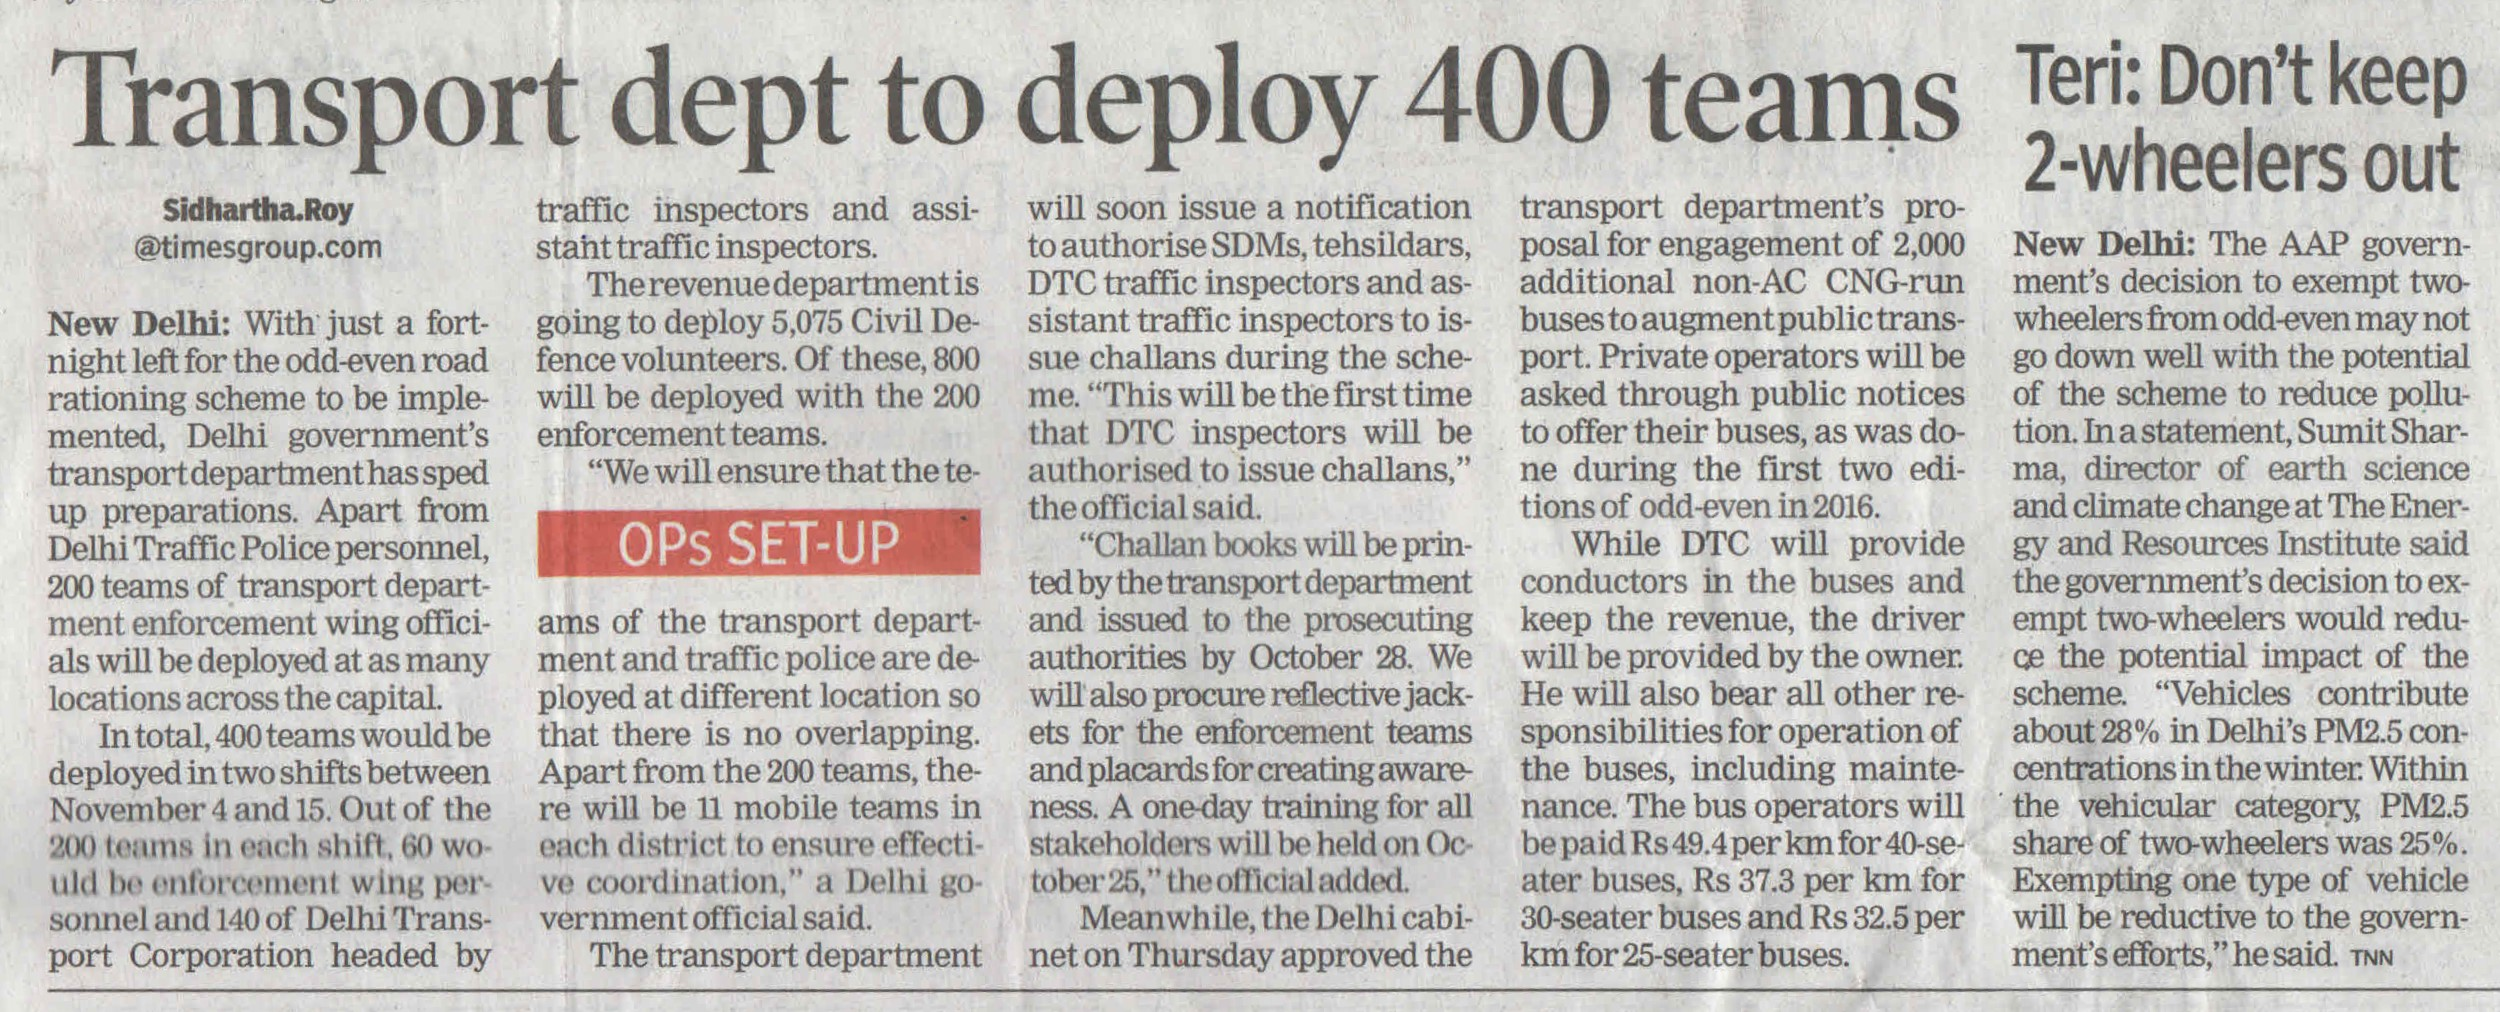 Transport dept to deploy 400 teams